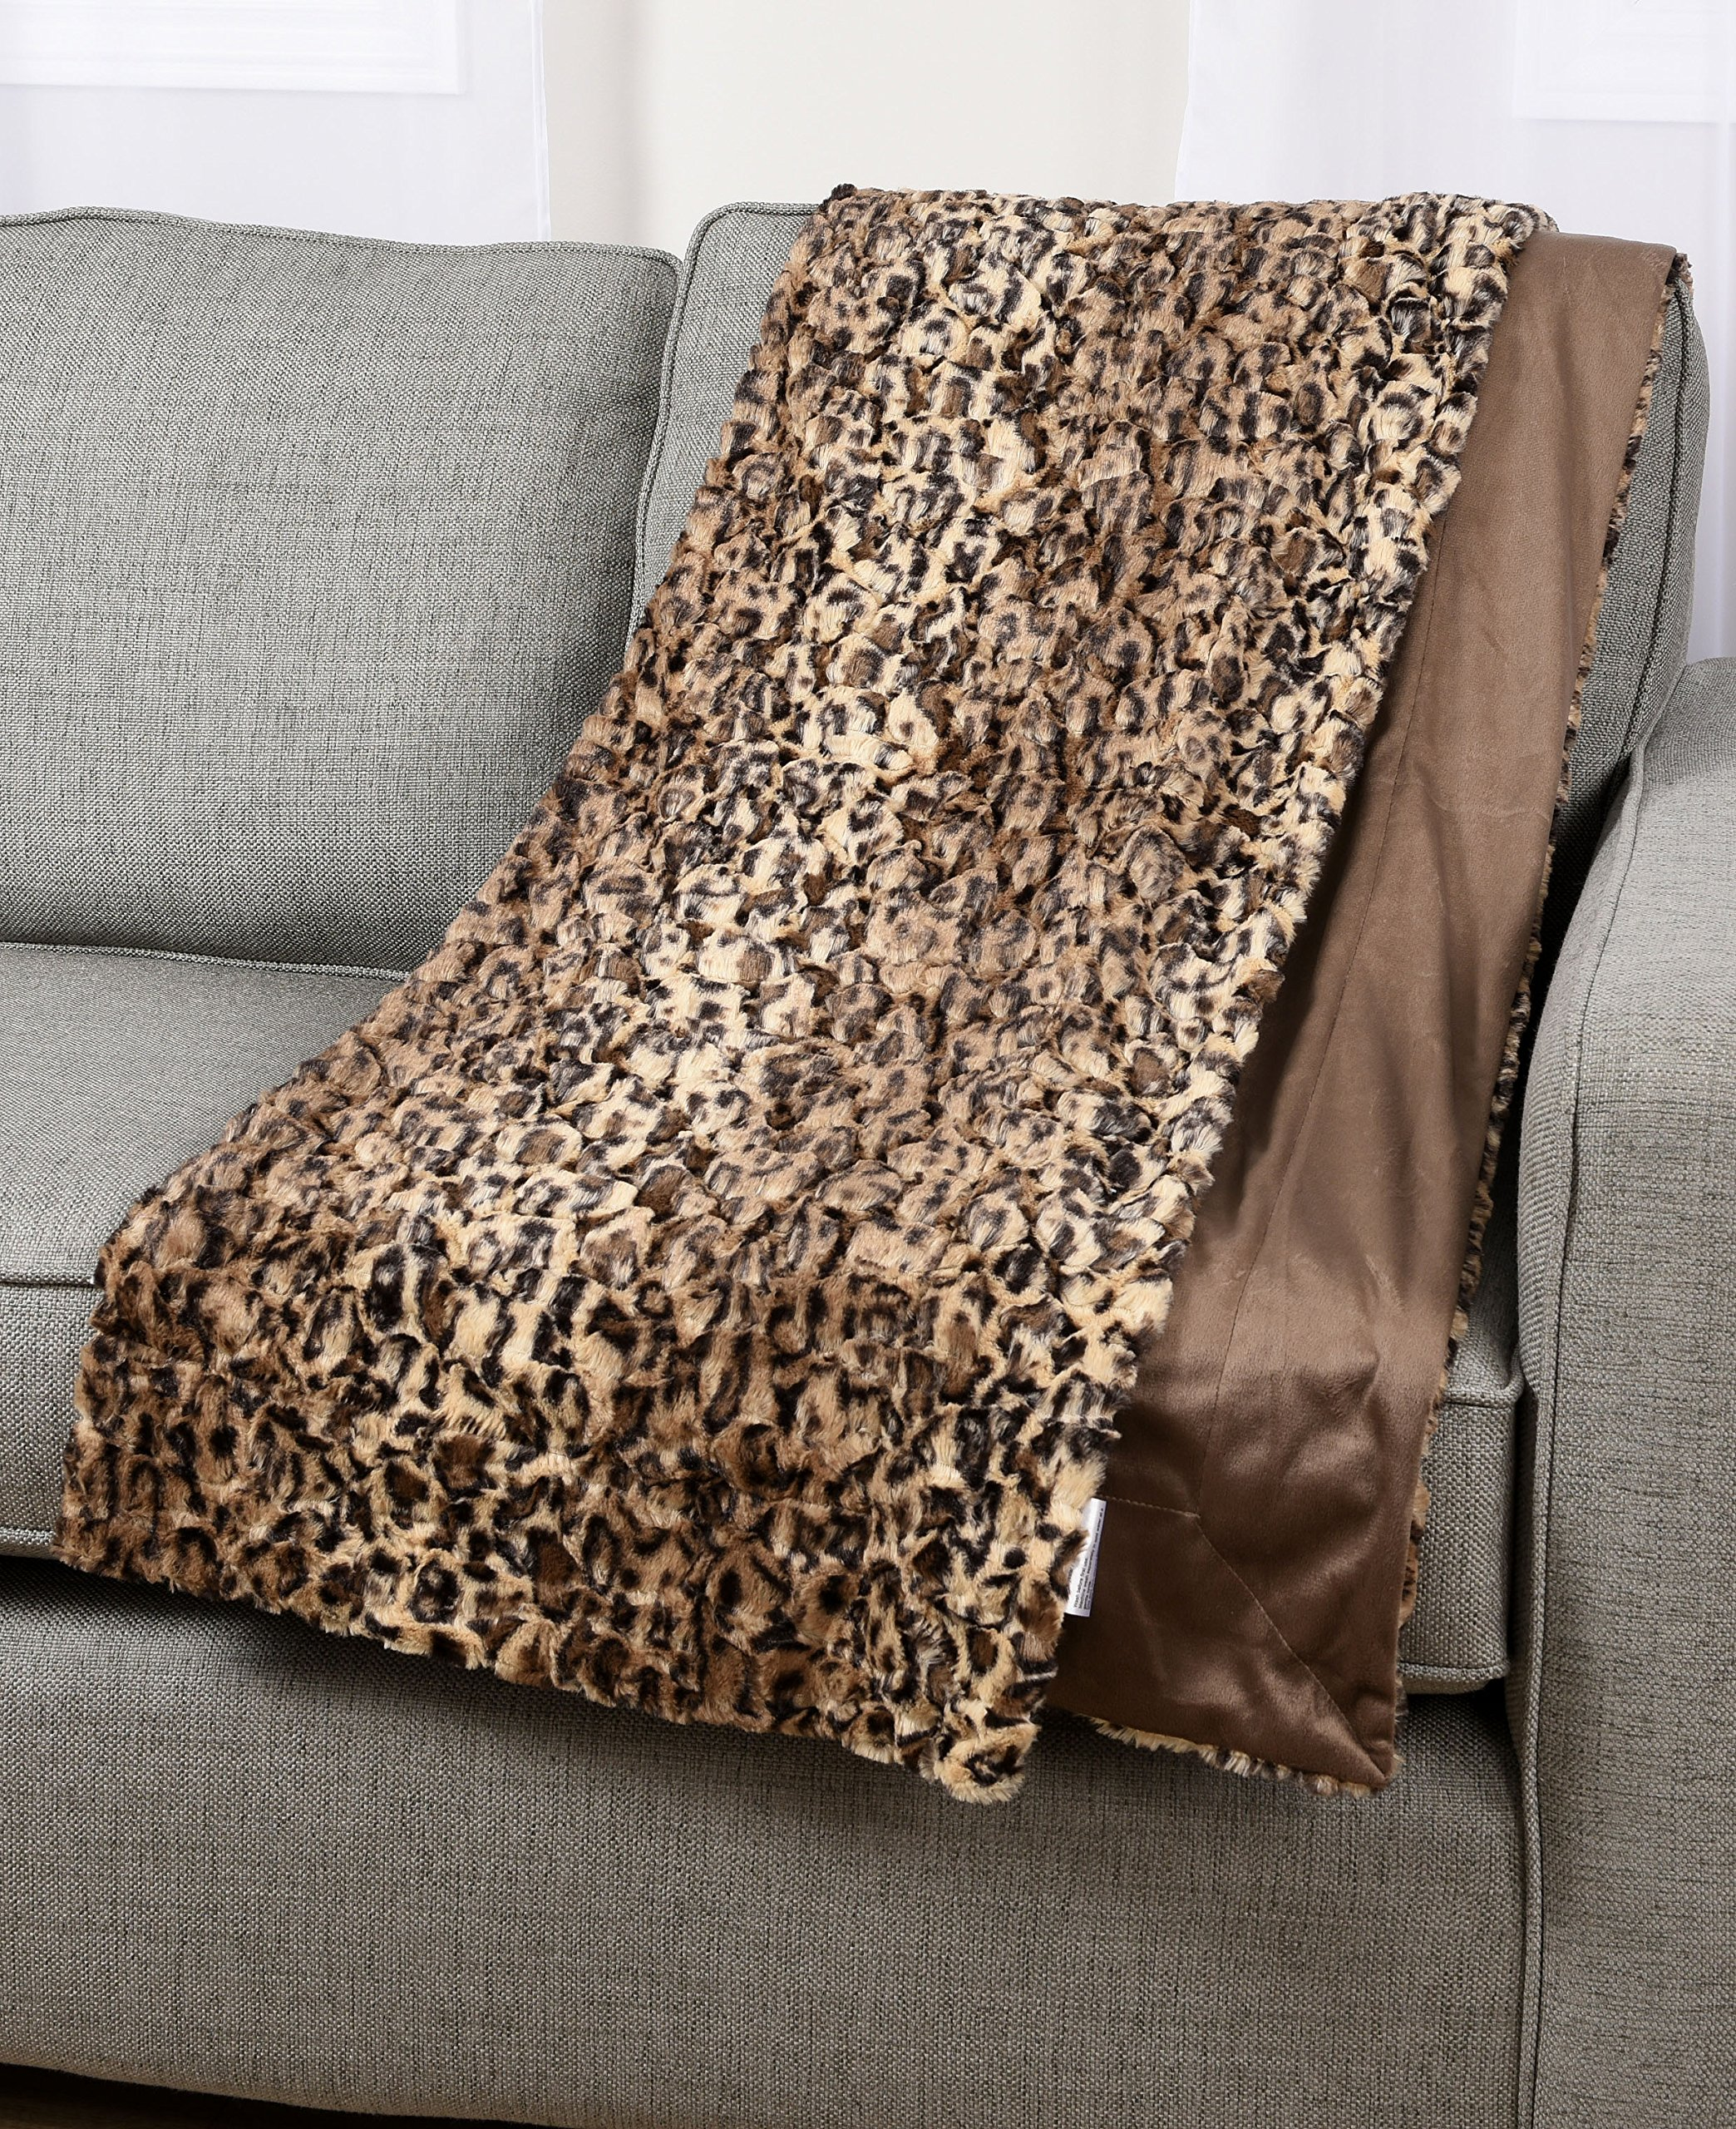 Animal Leopard Print Plush Faux Fur Micromink Brown Super Soft Fleece Throw Brand New Reversible Adults Comfortable Cover Blanket 50x60-inch